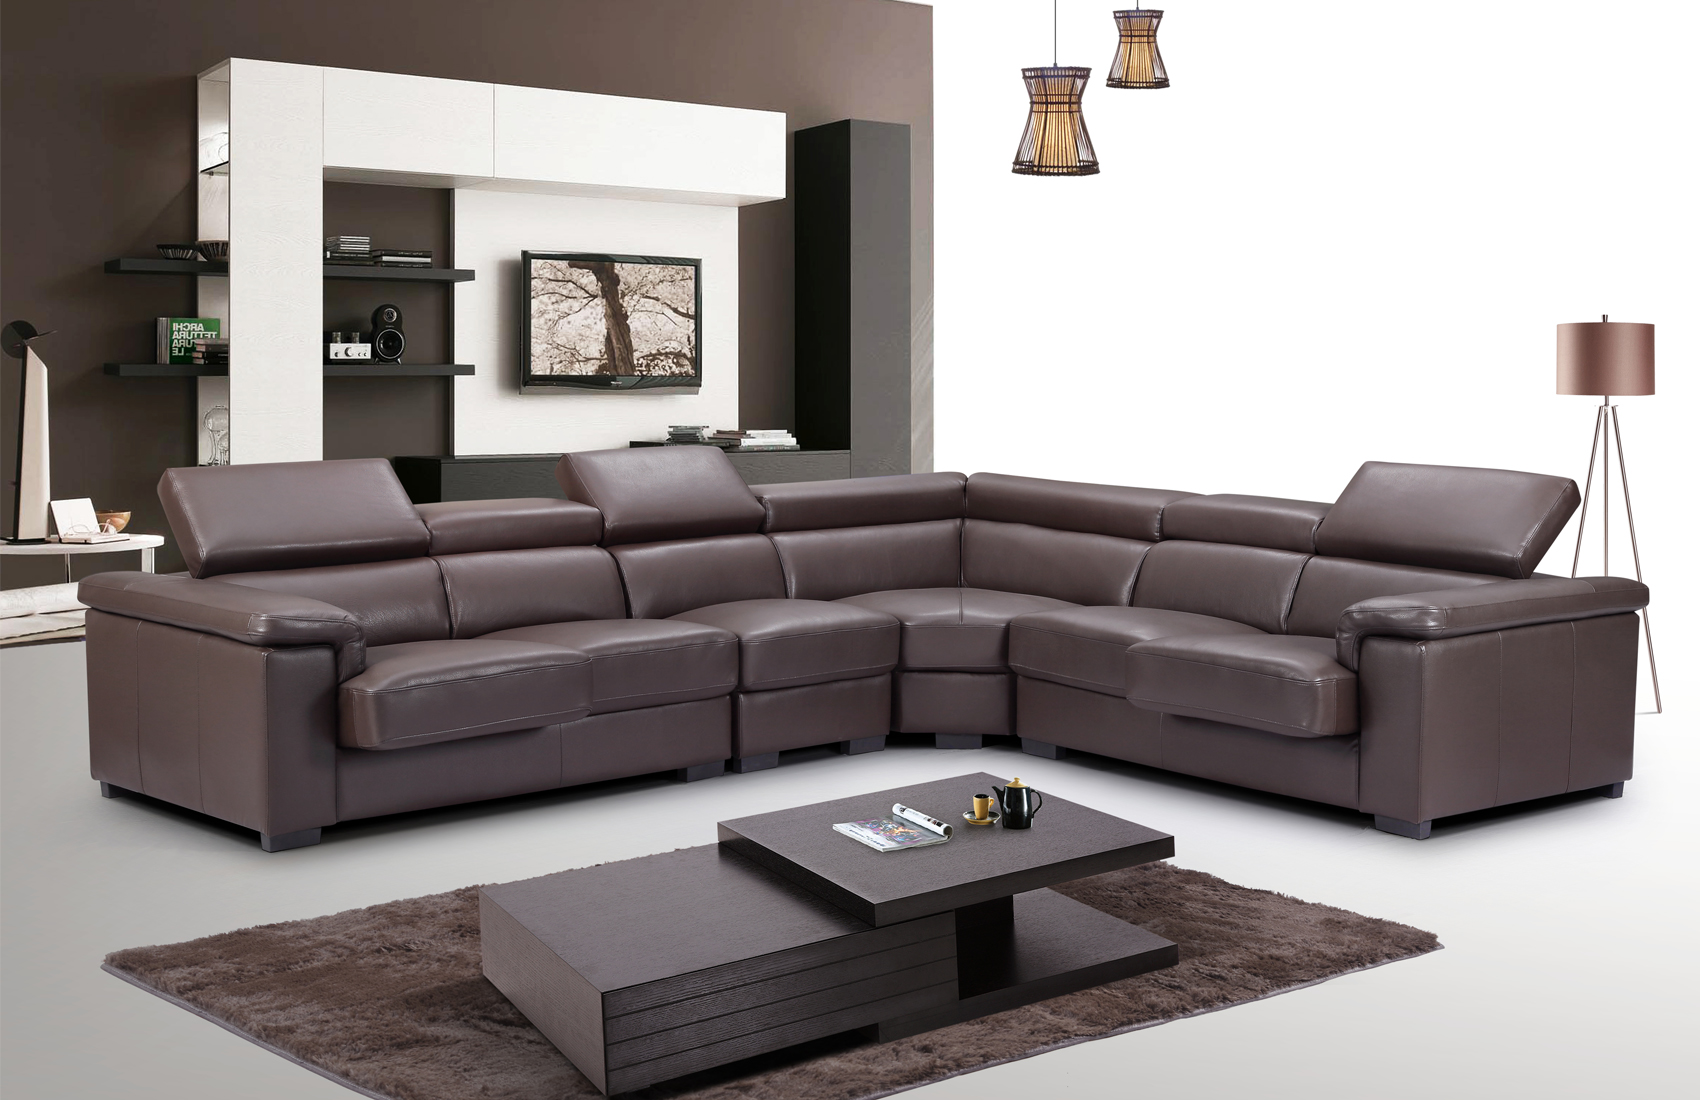 High End Quality Leather L-shape Sectional